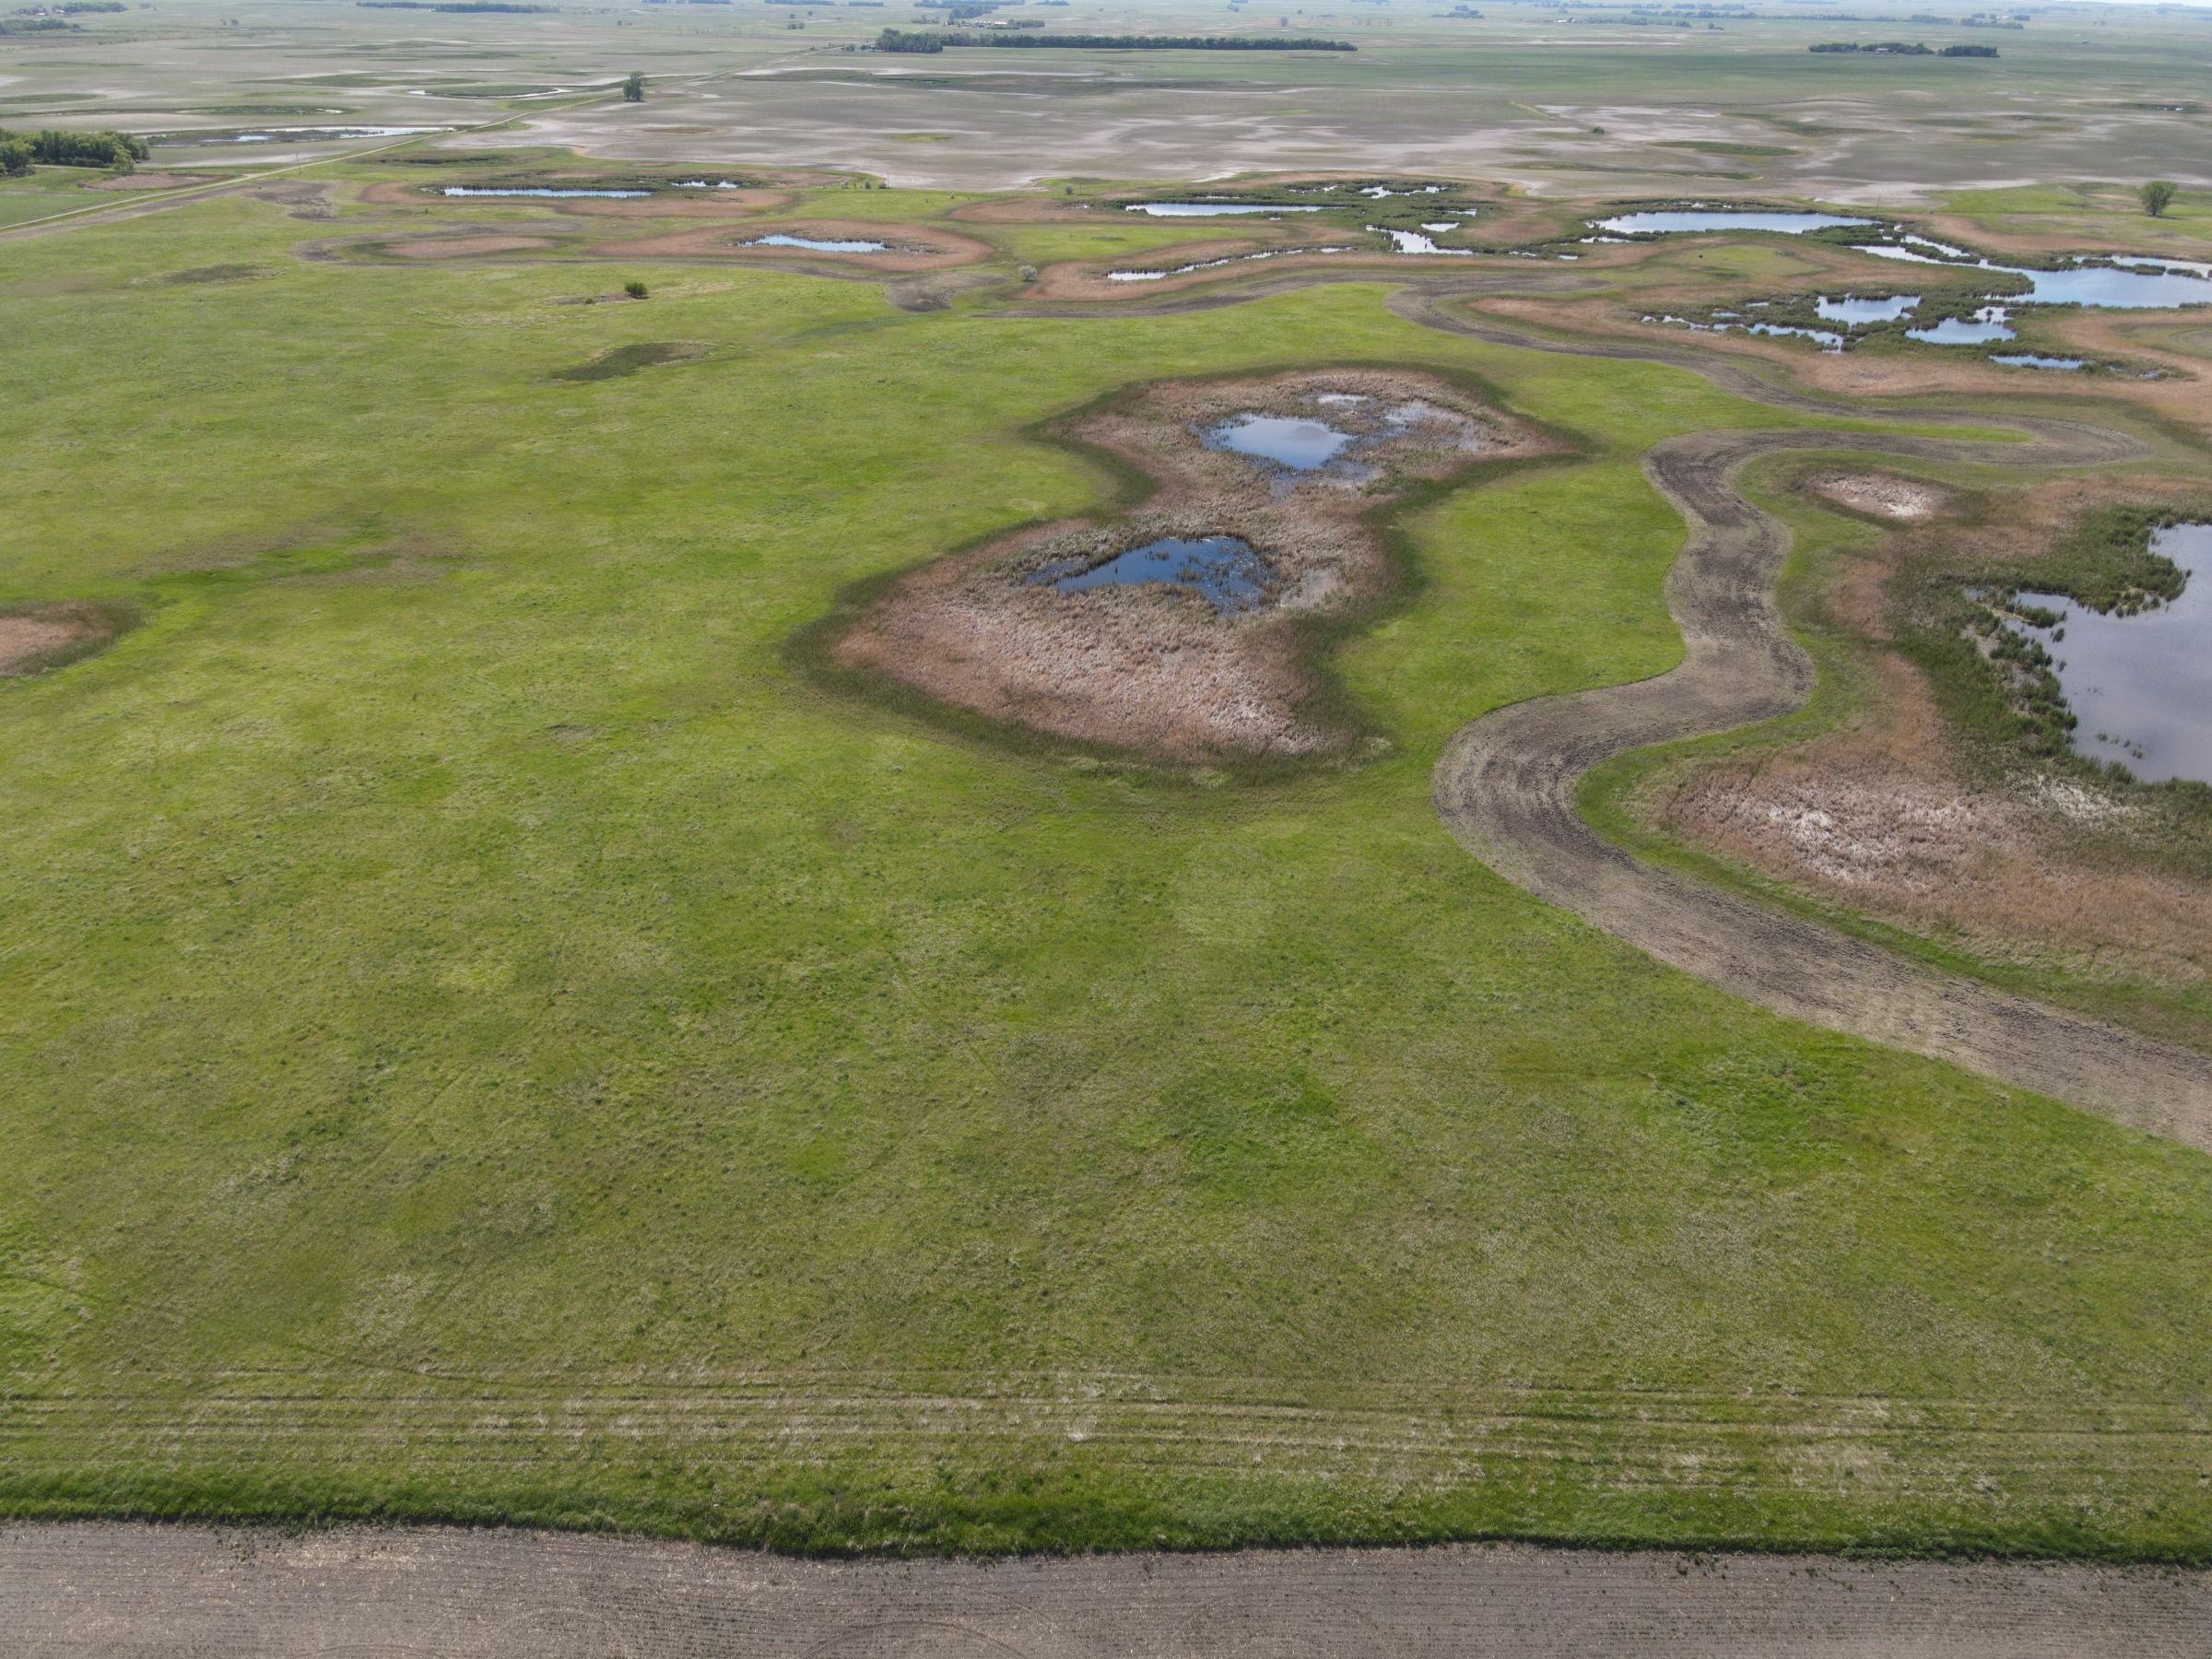 auctions-cass-county-north-dakota-320-acres-listing-number-15590-2-2021-06-22-191233.JPG